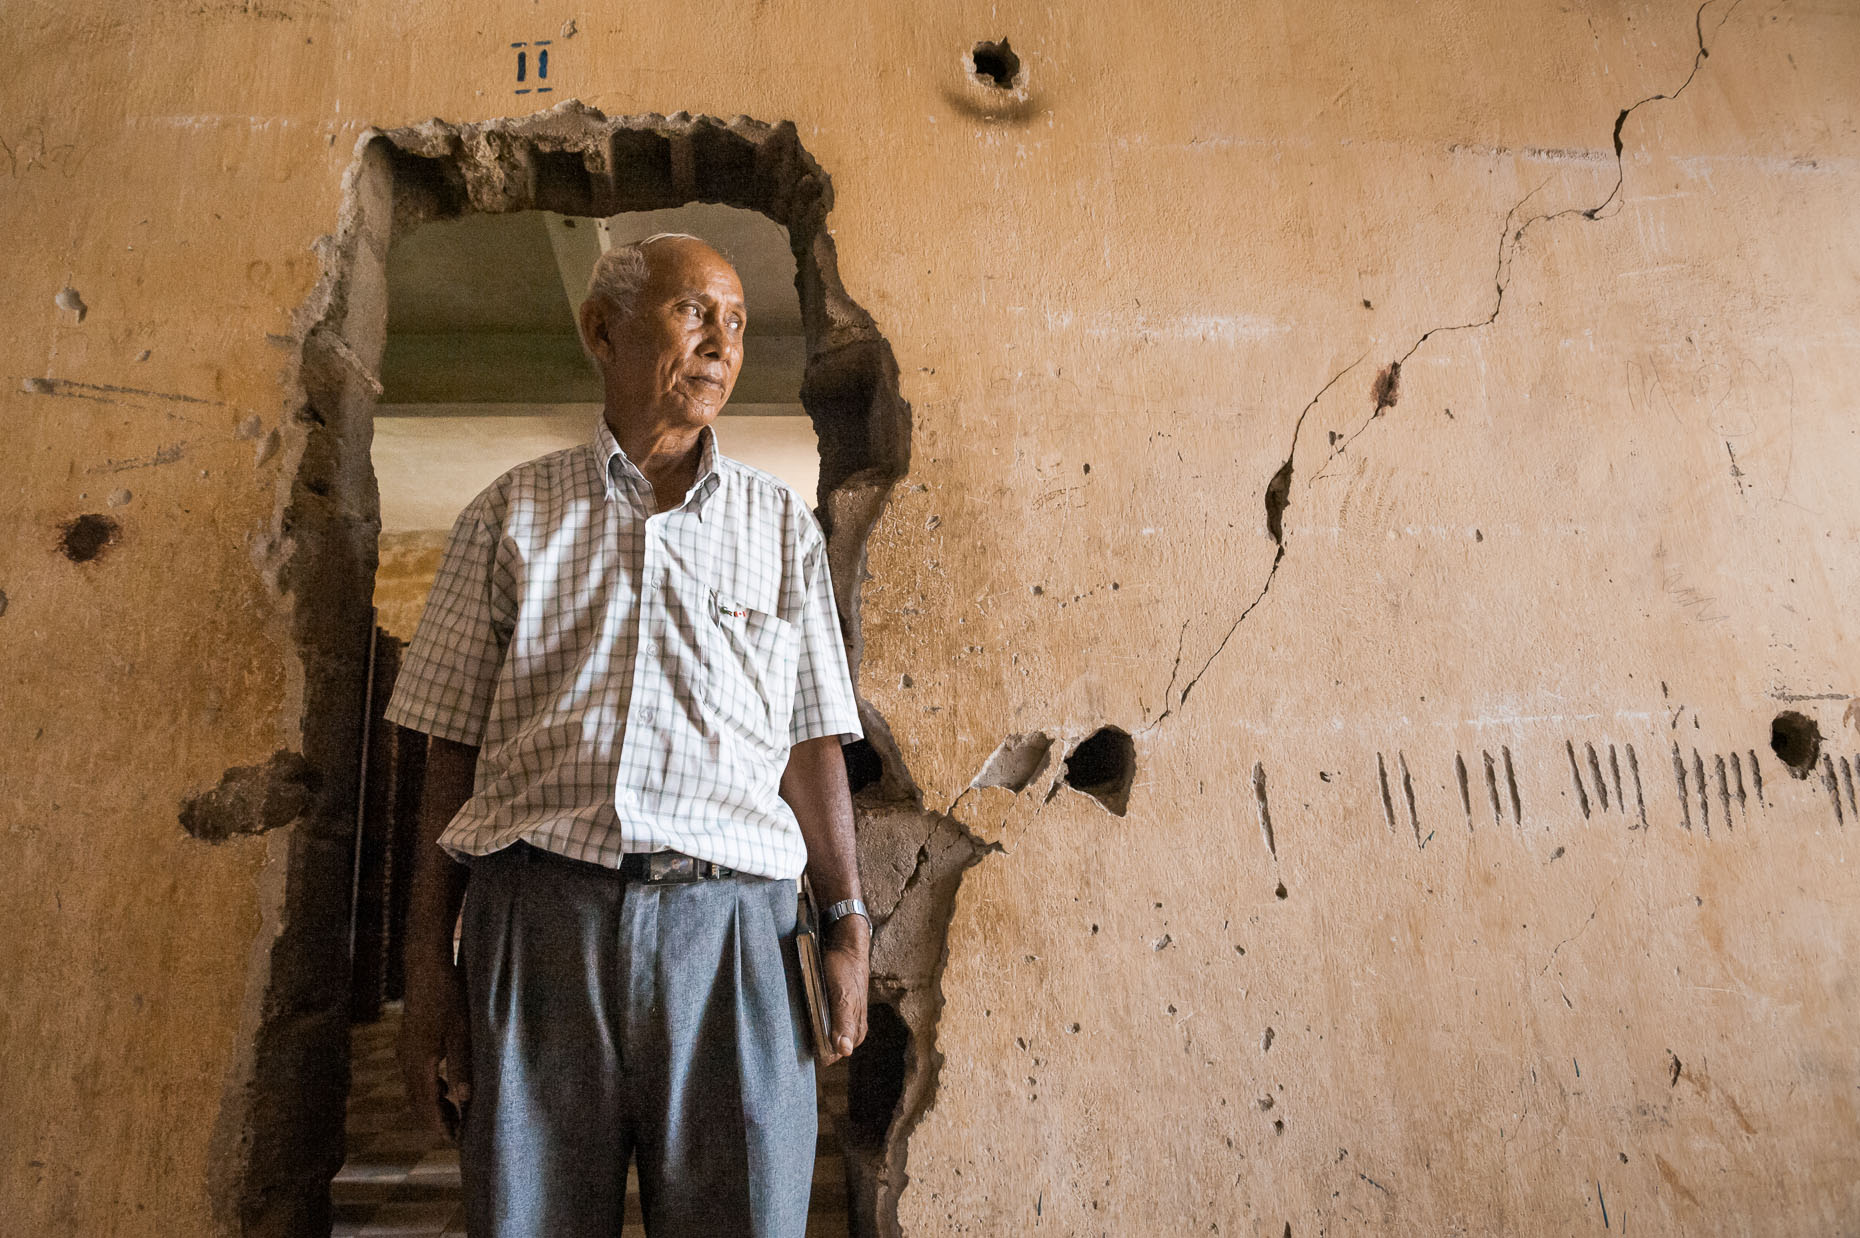 Environmental portrait of Khmer Rouge survivor Chum Mey